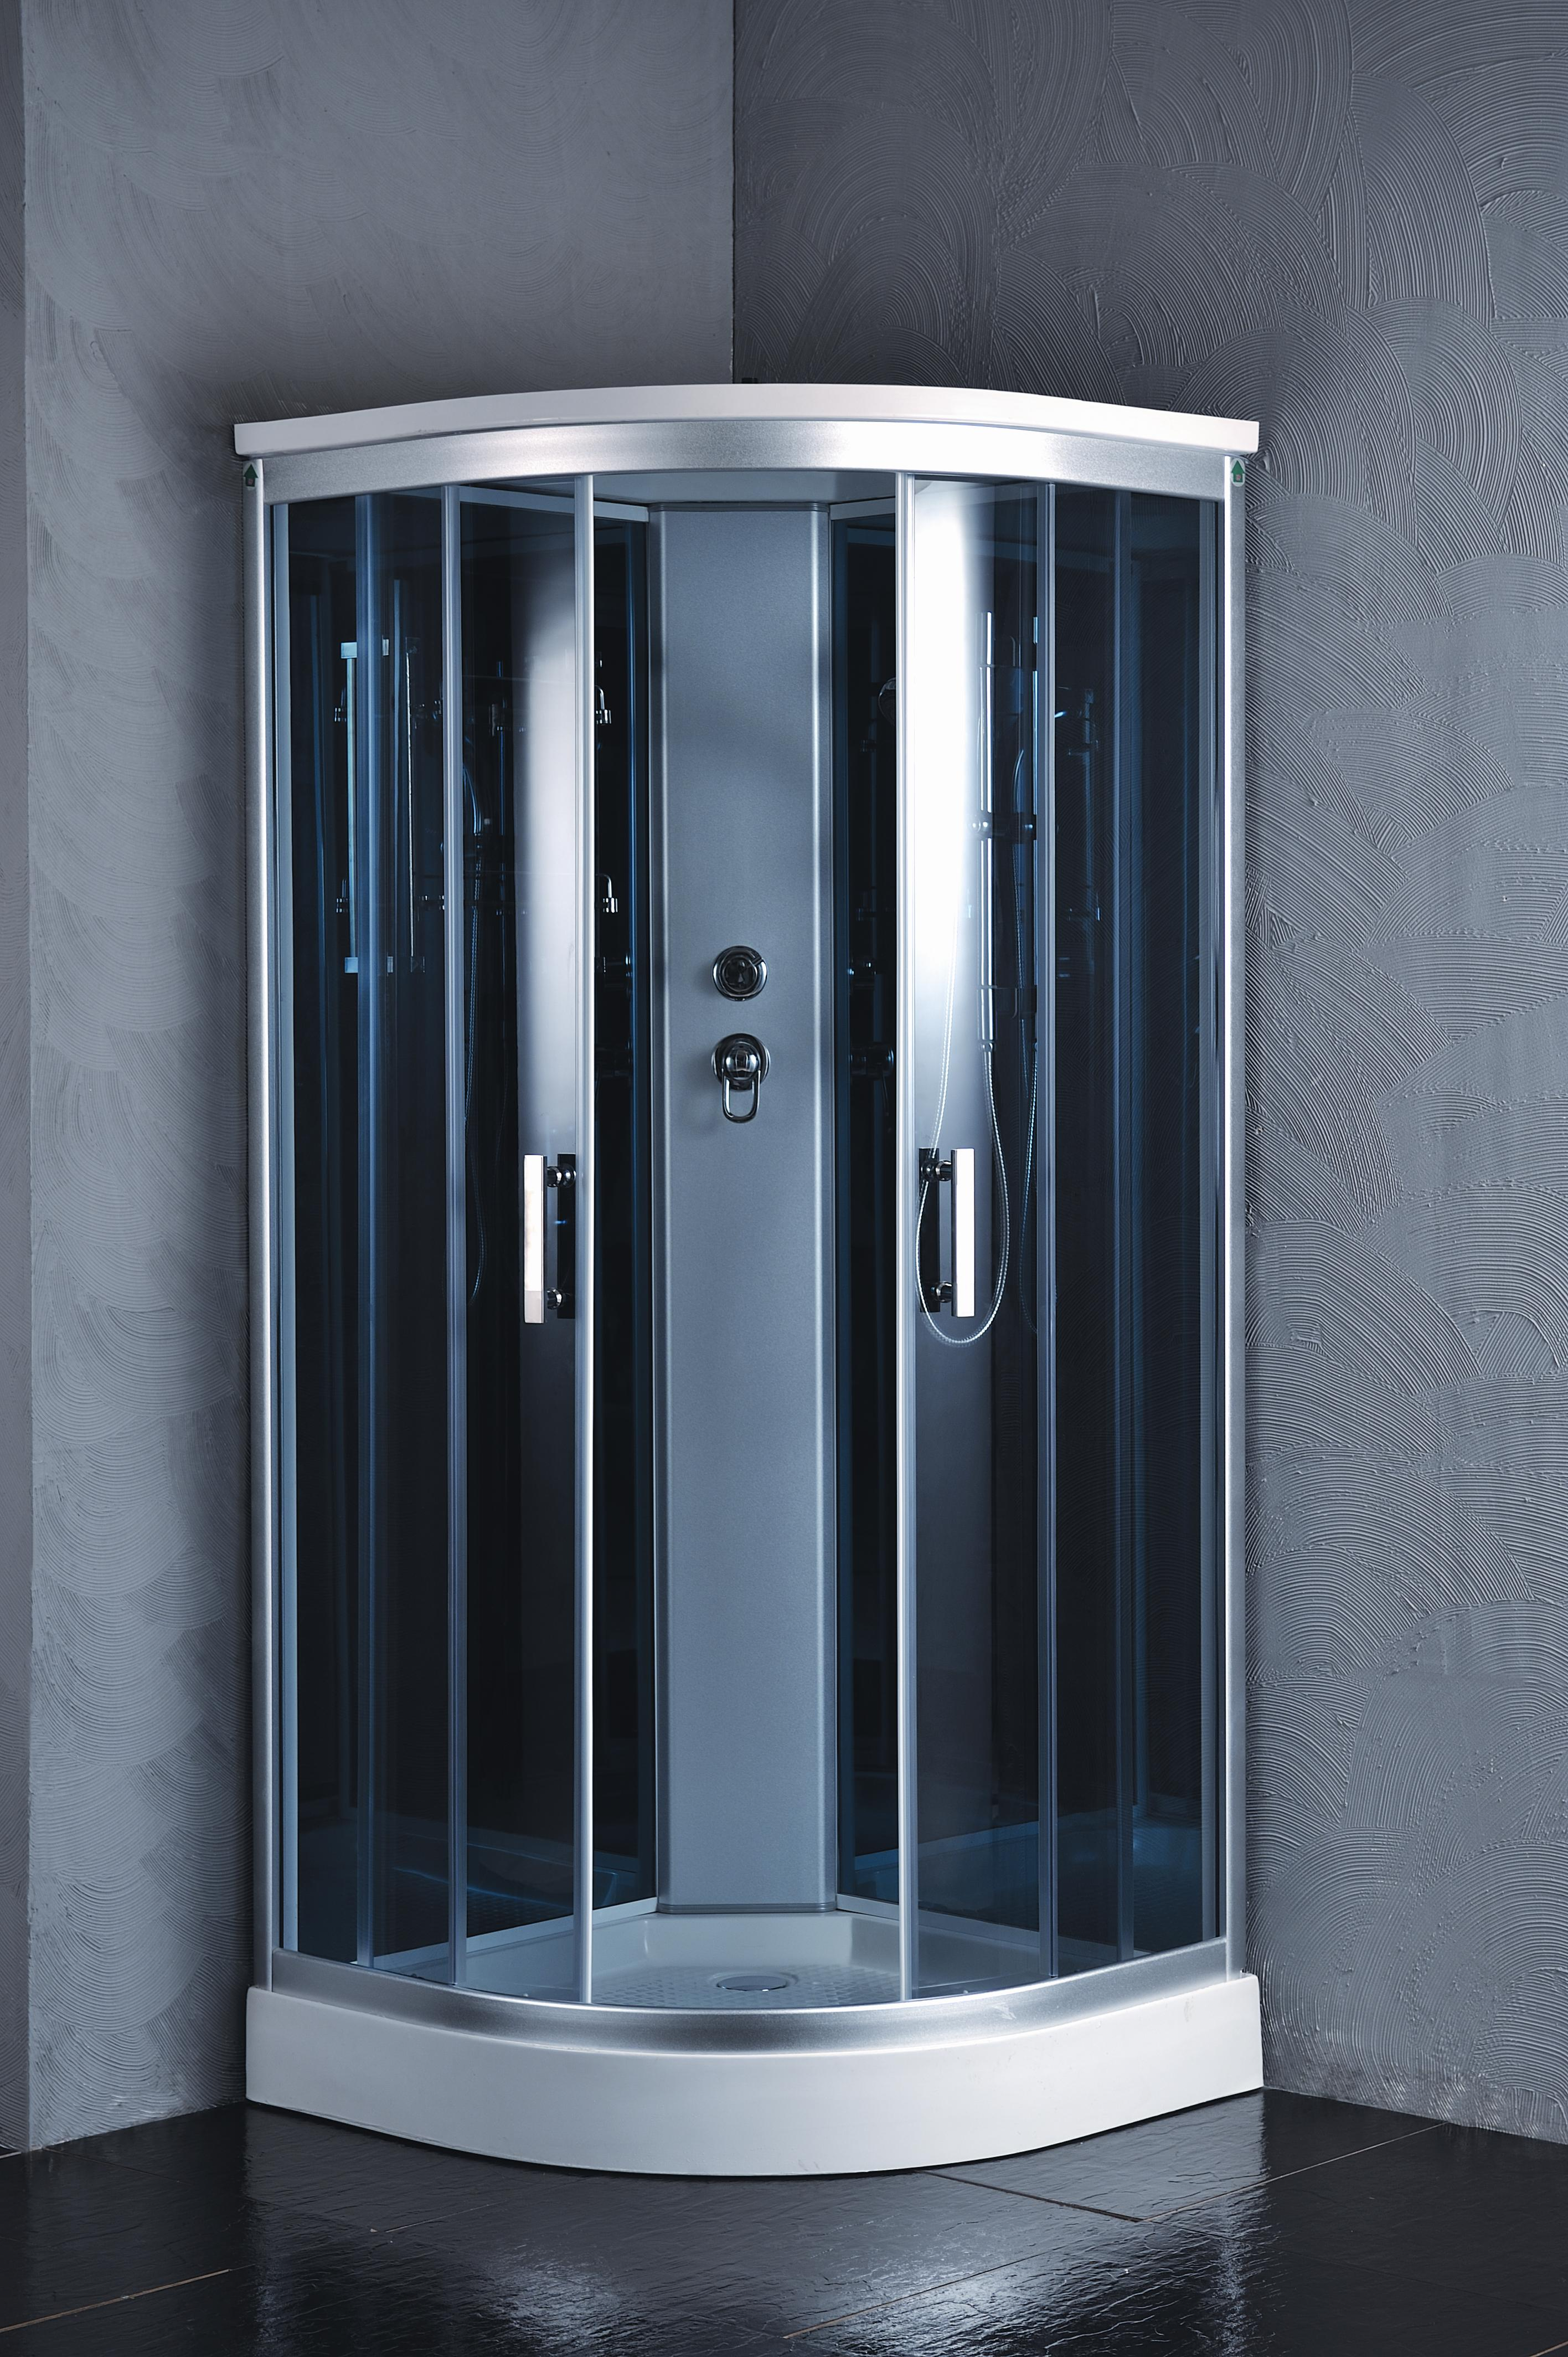 Kokss 9918 Shower Room Enclosure with Rainfall Showerhead and LED ...